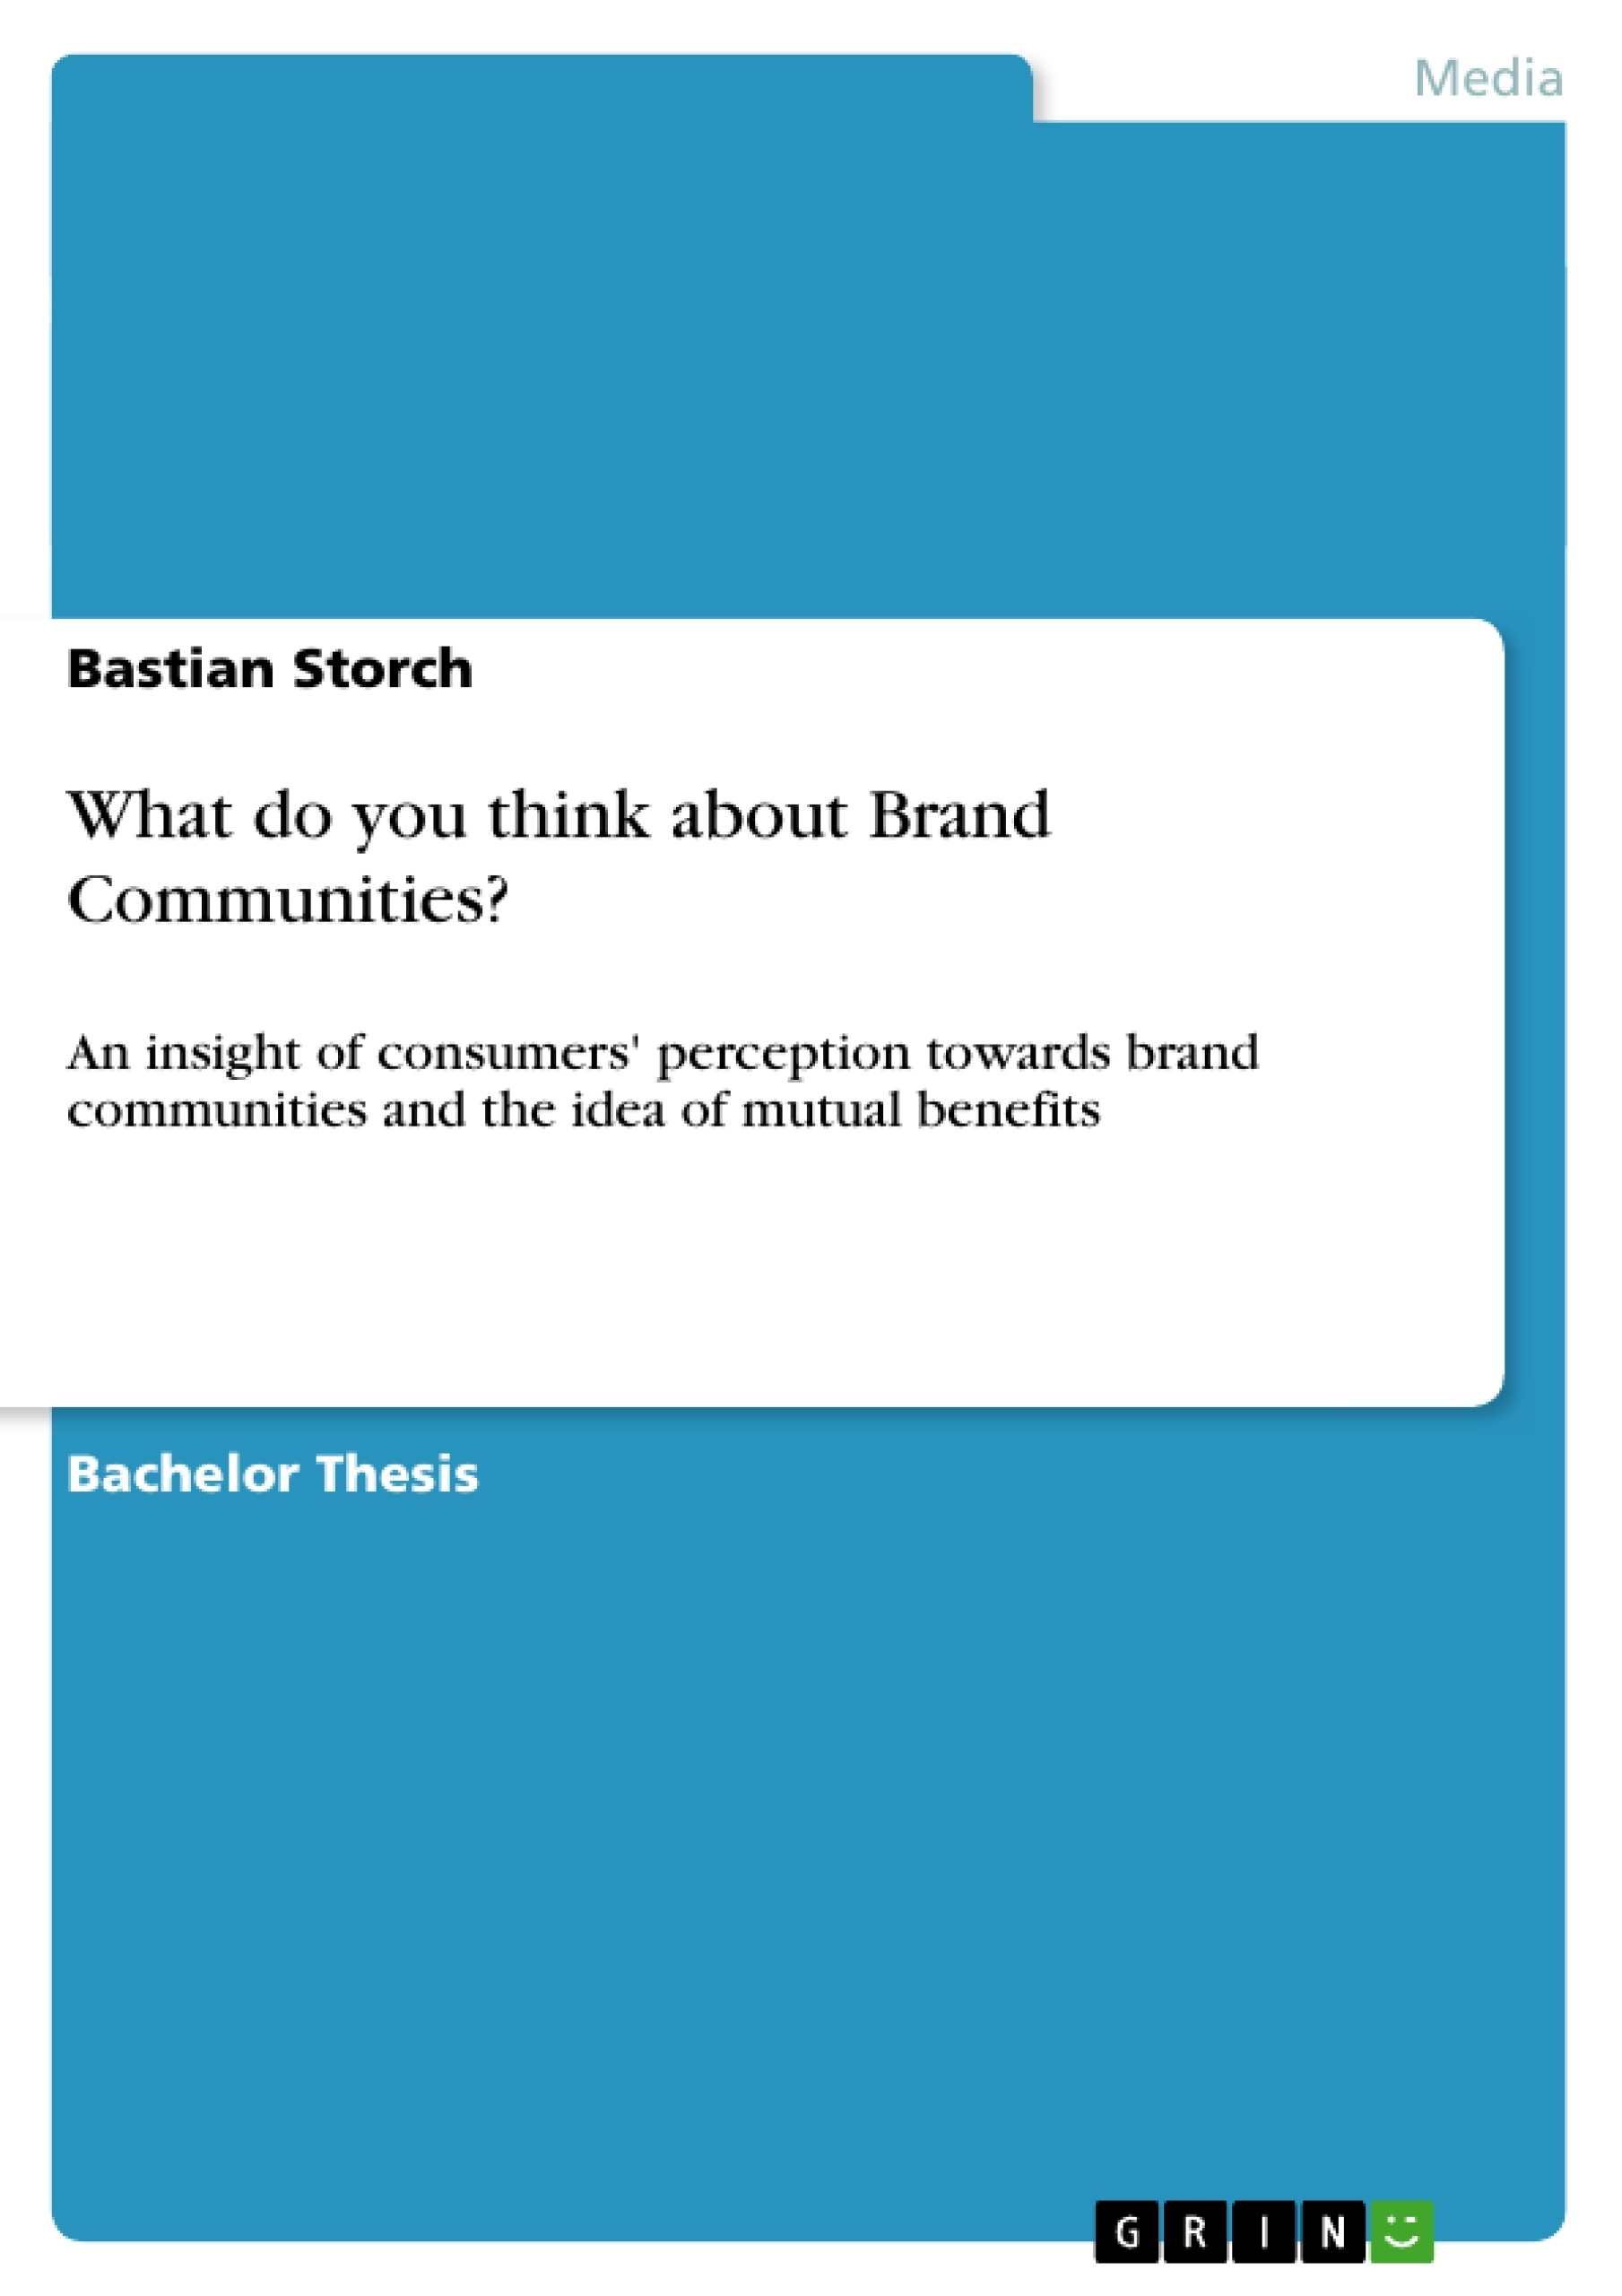 Title: What do you think about Brand Communities?